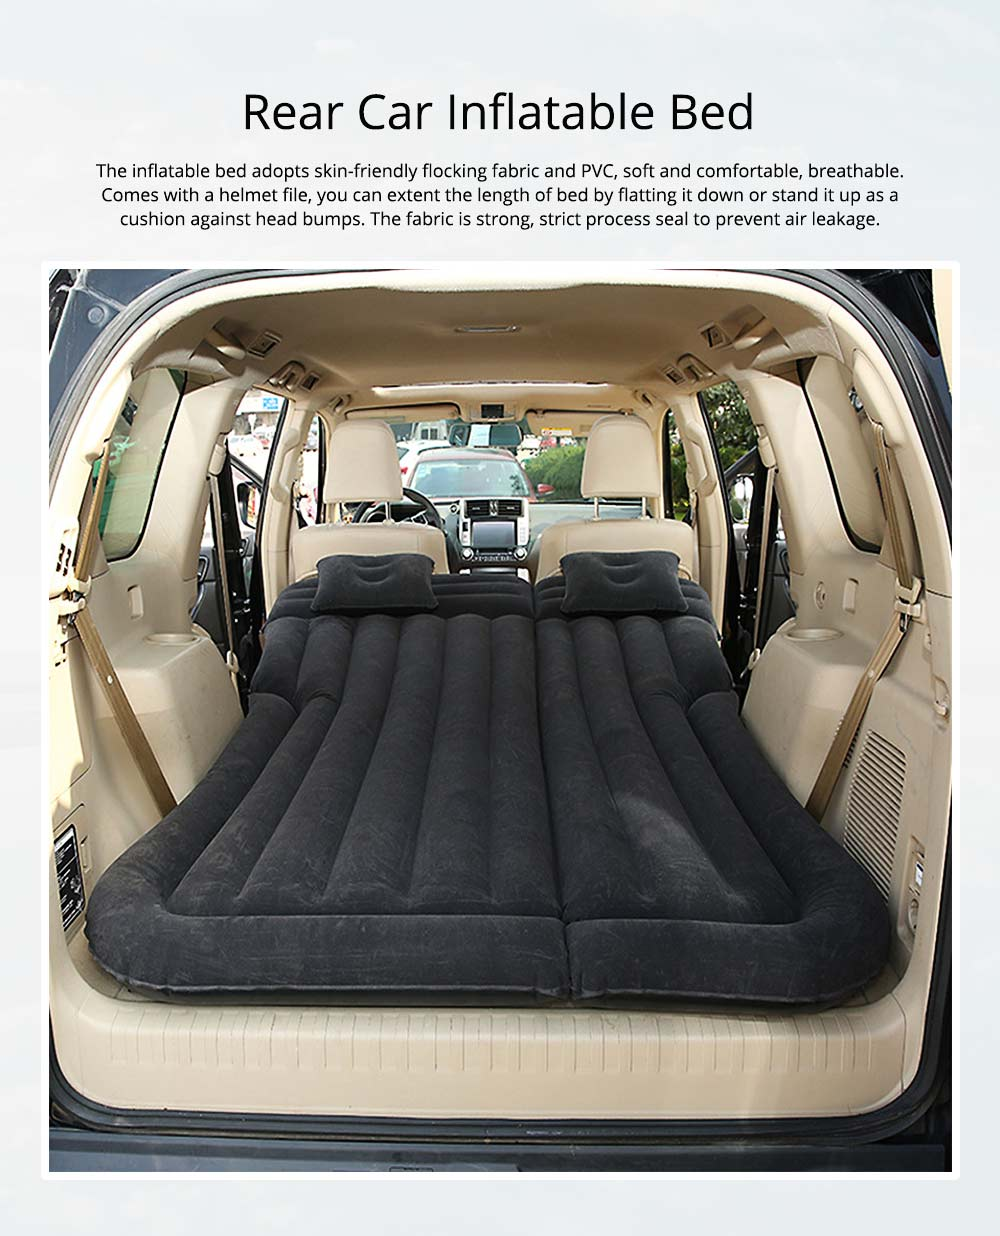 Rear Car Inflatable Bed, Inflatable Travel Car Mattress Air Bed Back Seat Sleep Rest Mat with Pillow 0